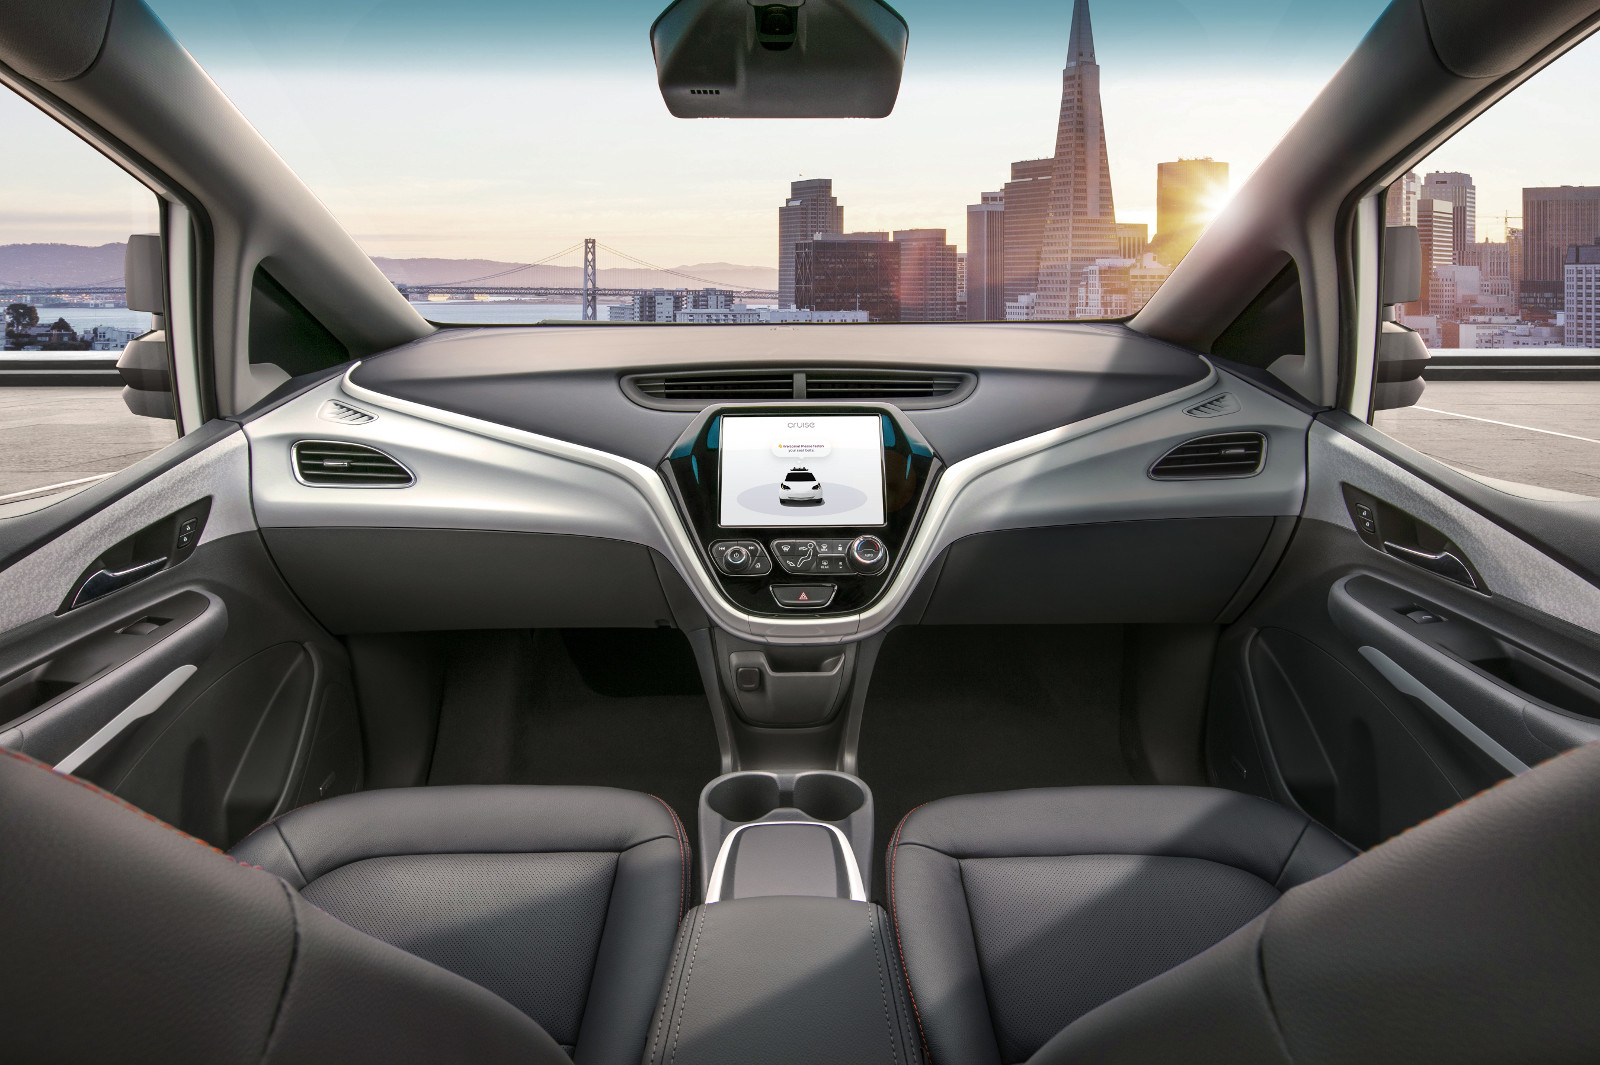 General Motors wants to release the car without manual control